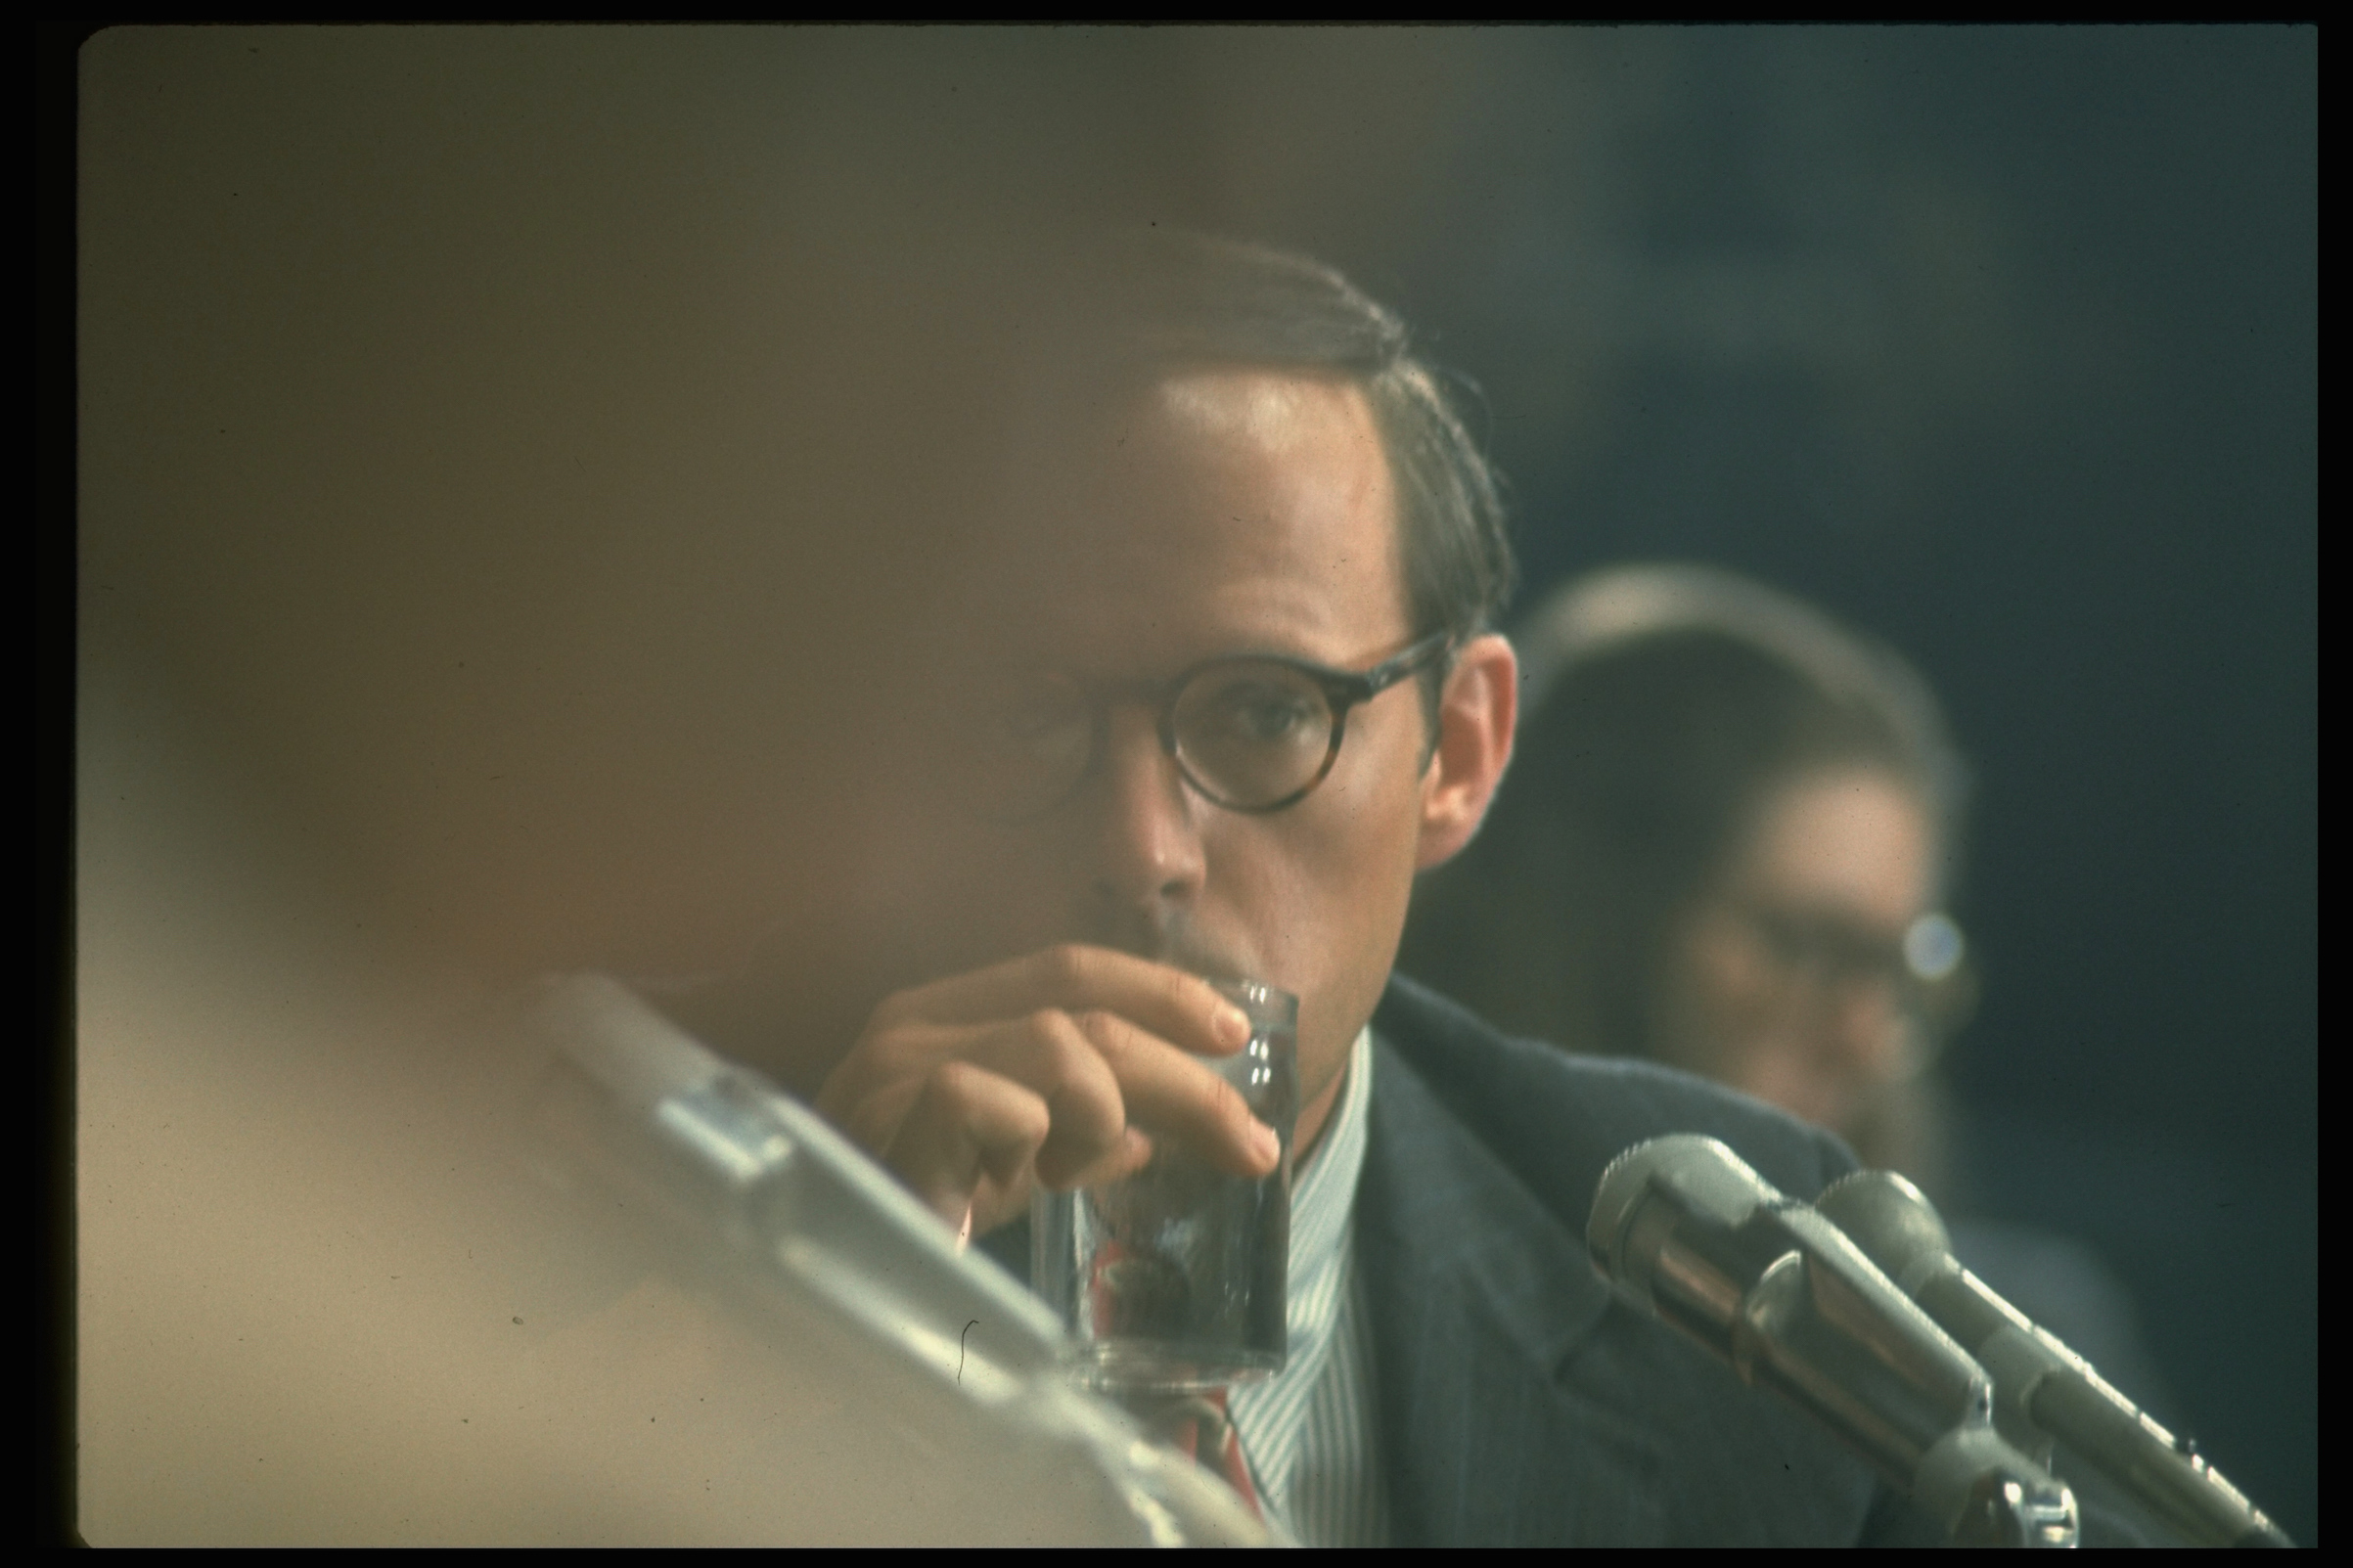 Nixon aide John Dean during Senate hearings on Watergate break-in.